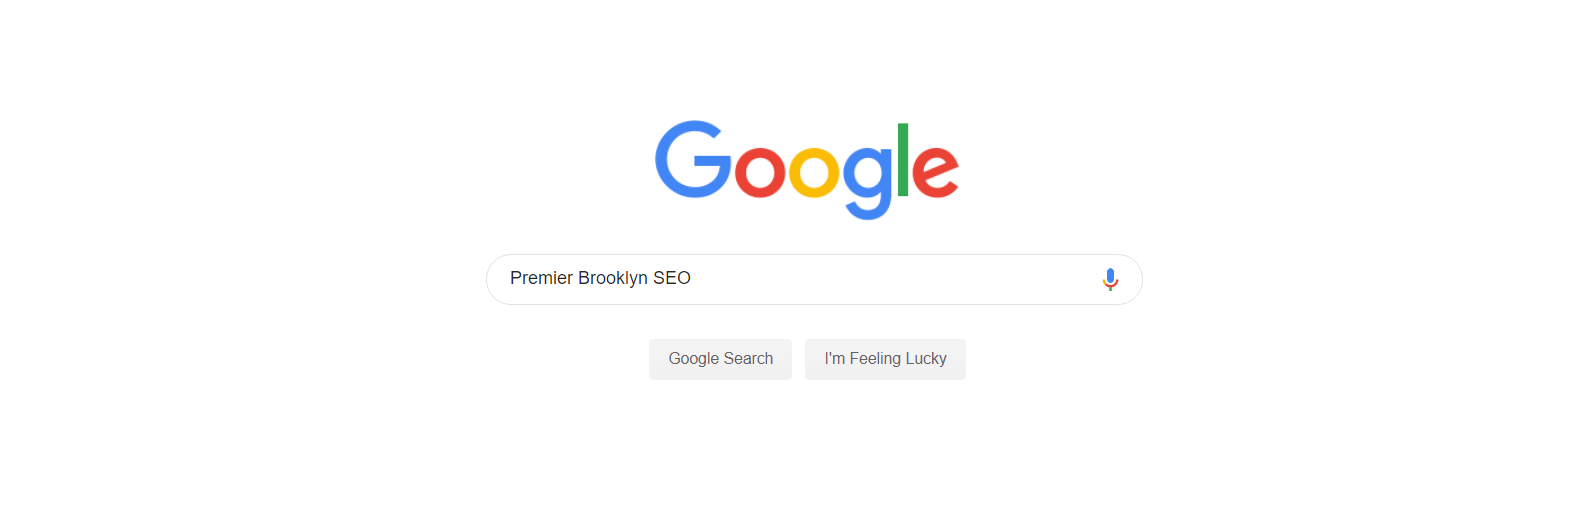 premier-brooklyn-seo-google-search-box